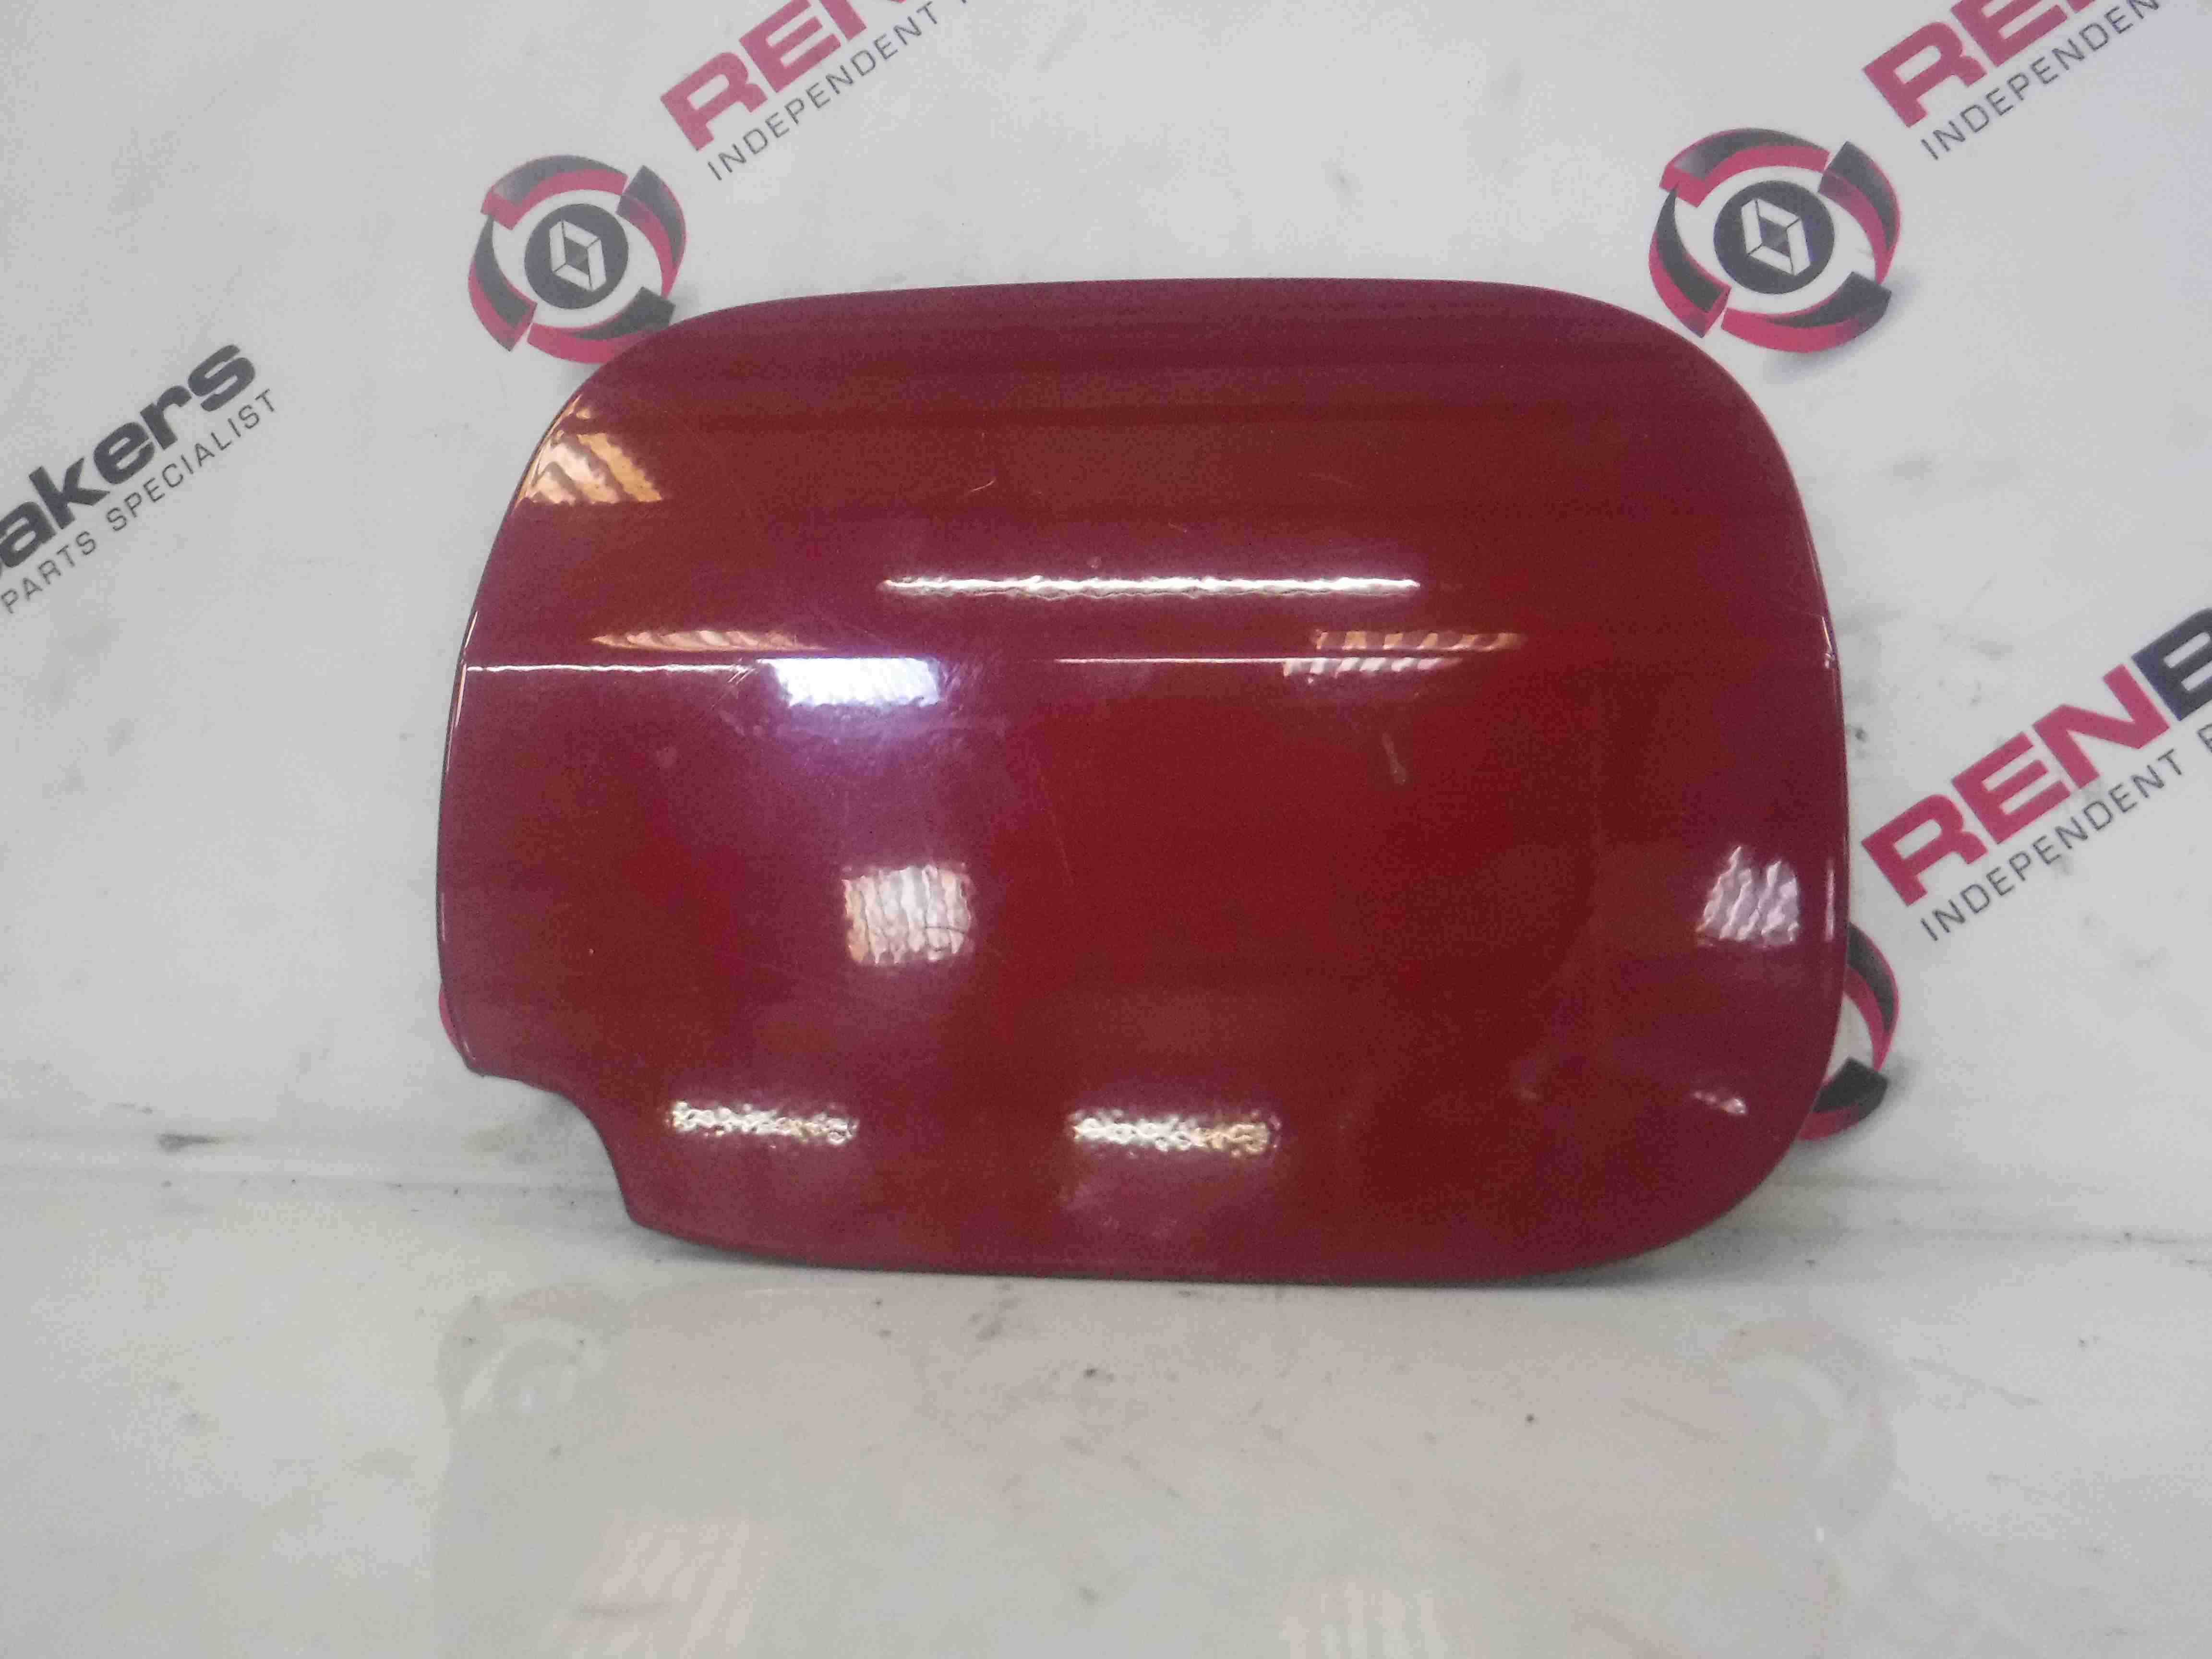 Renault Clio MK3 2005-2012 Fuel Flap Cover Red TENNJ  8200290088